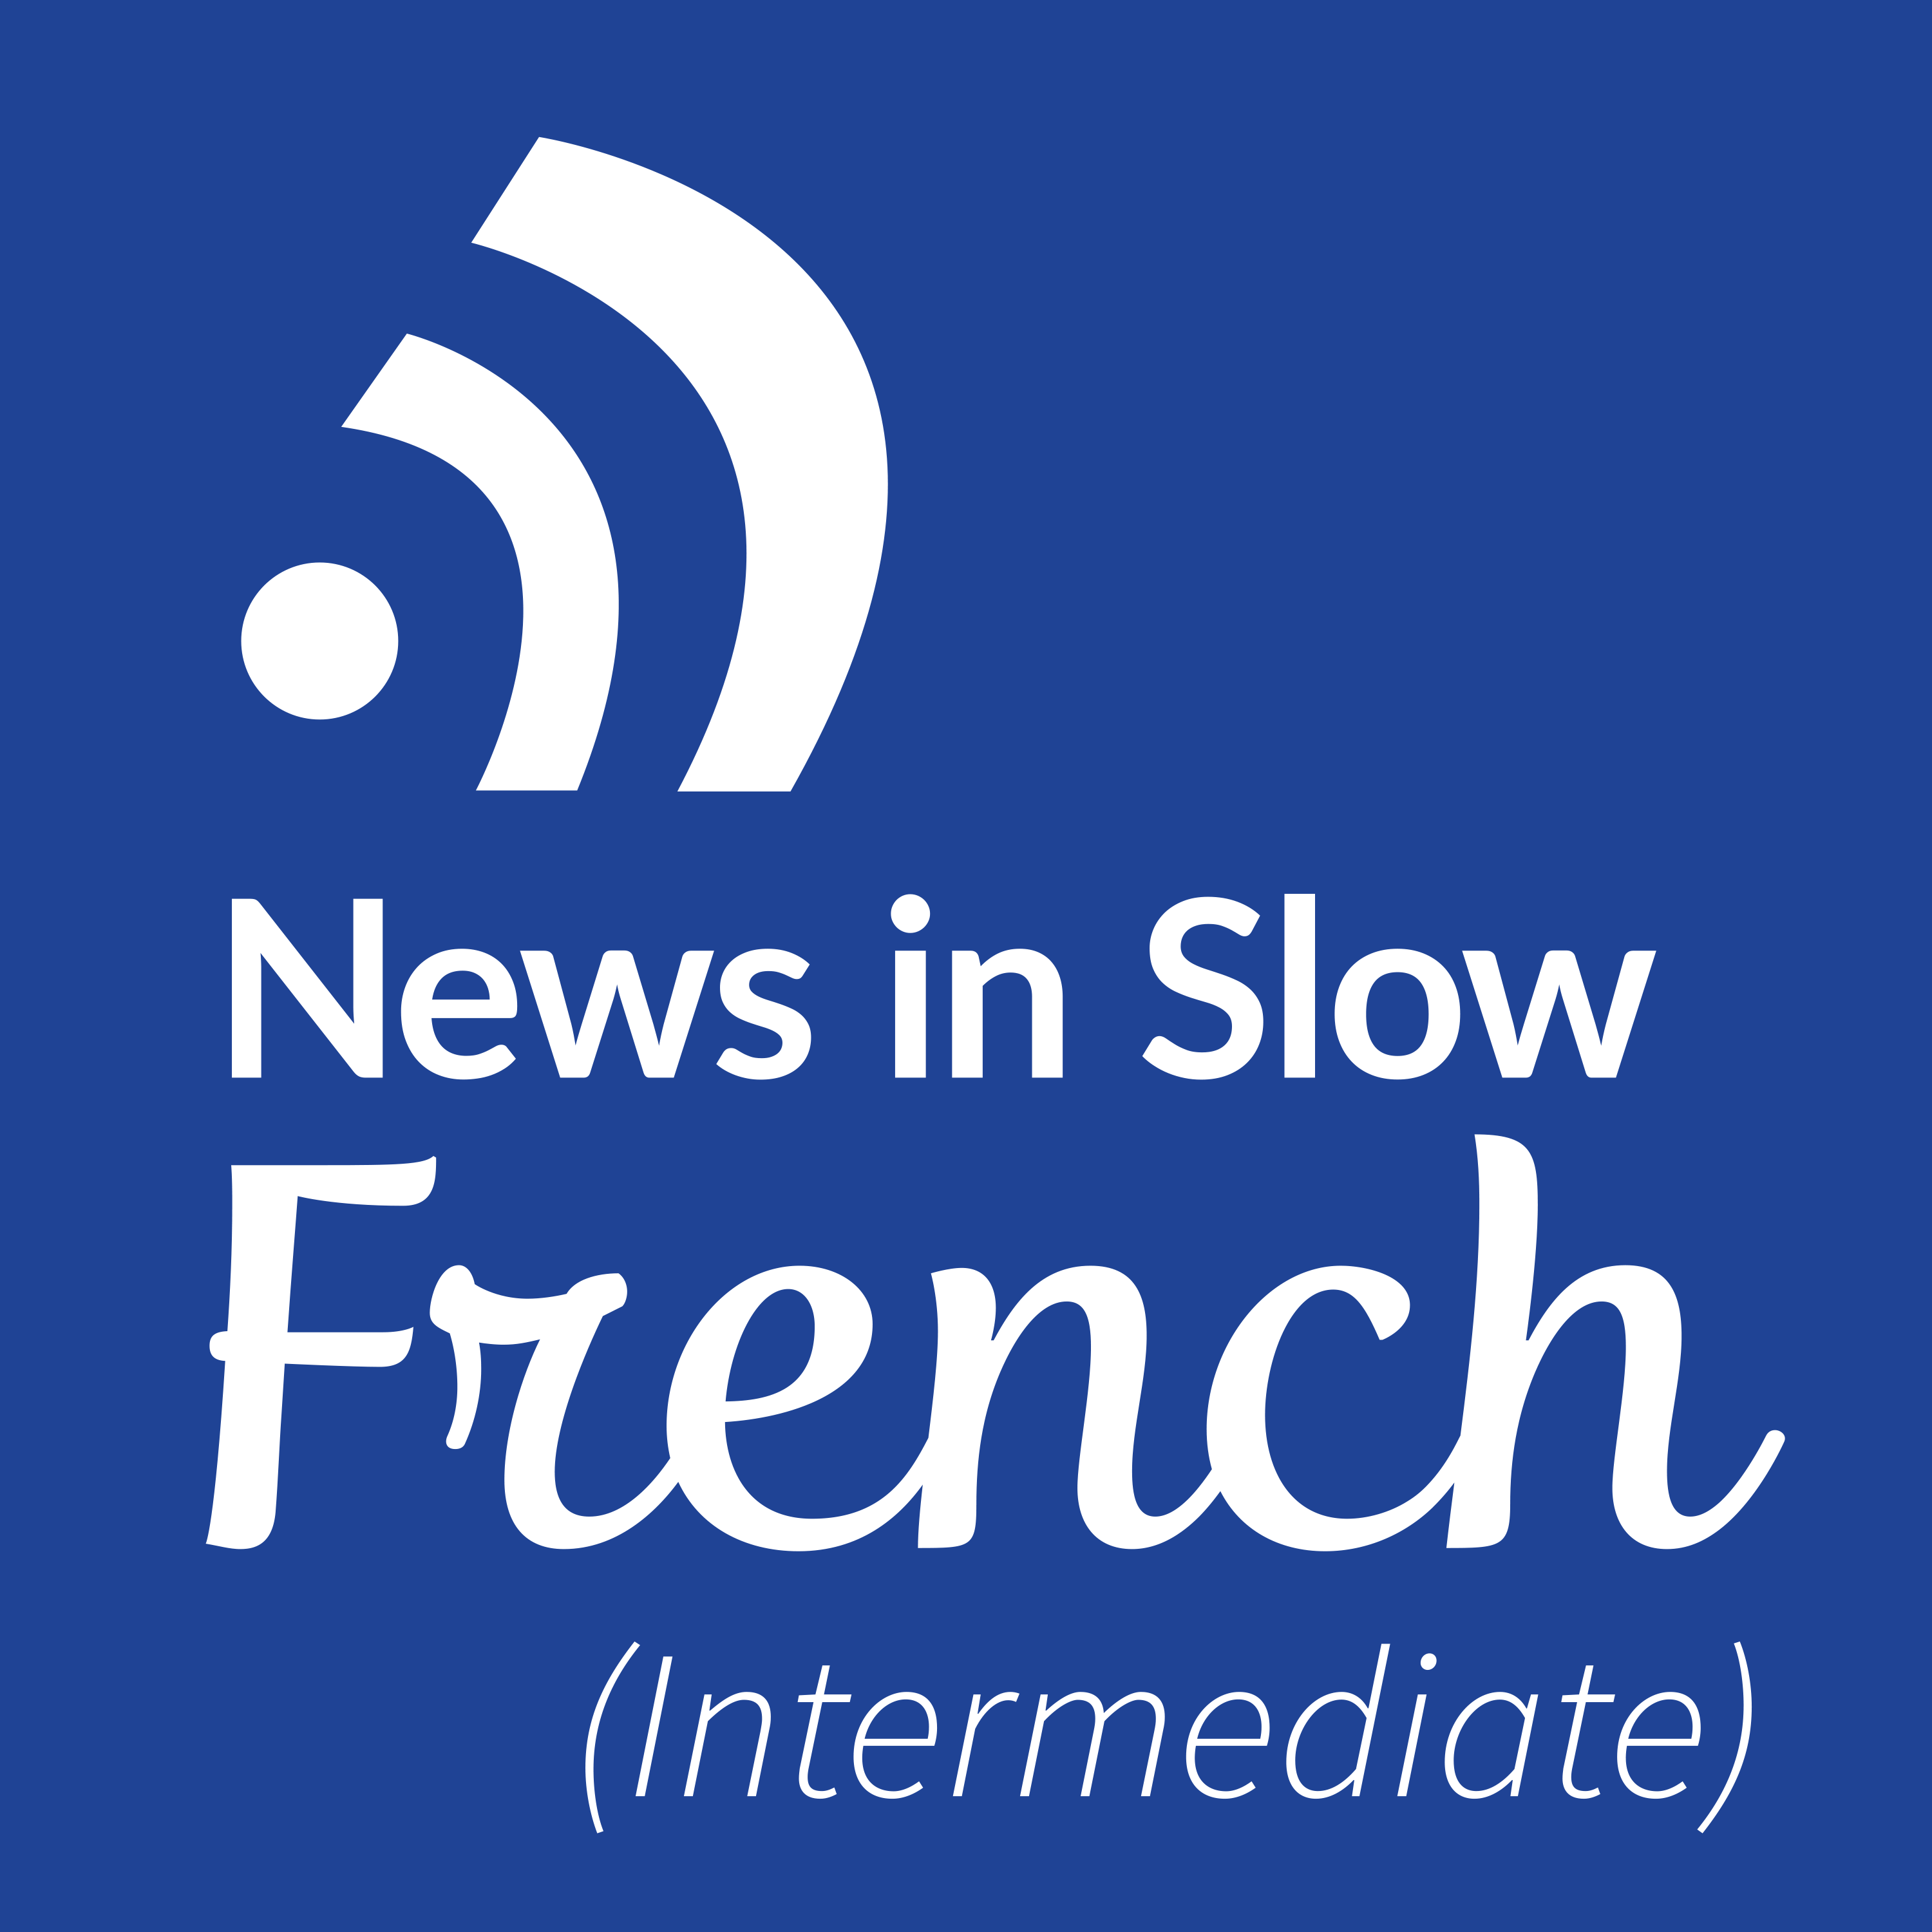 News in Slow French #257 - Learn French through current events